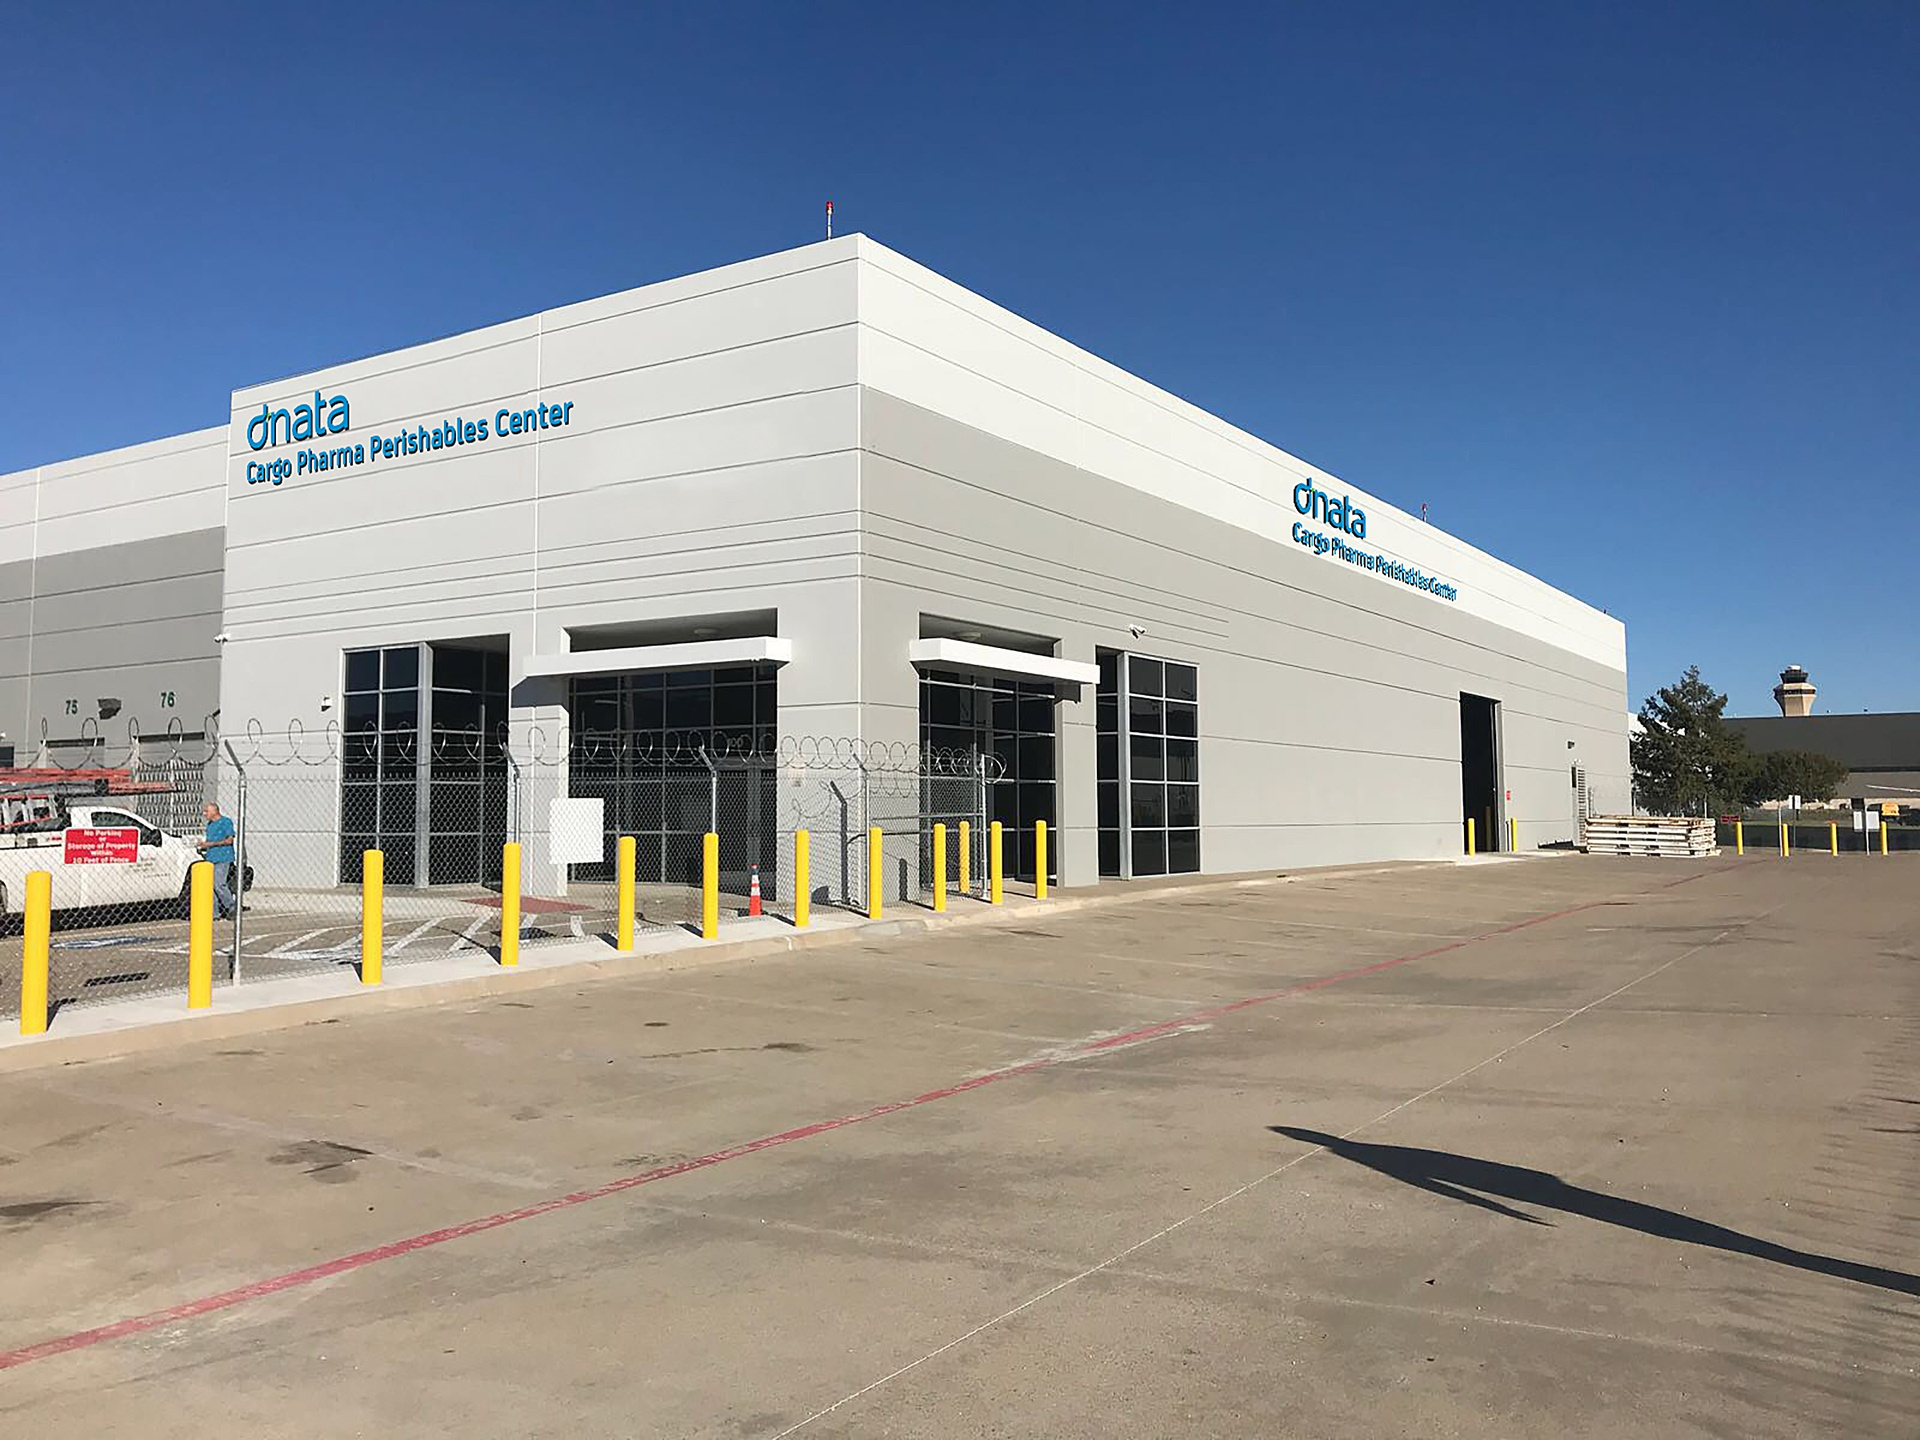 dnata has officially opened a 37,000 sq. ft. cargo centre that includes the only dedicated cool-chain perishable cargo facility at Dallas (DFW) airport.dnata Cargo will also be participating in the prestigious World Cargo Symposium in Dallas from 13-15 March 2018.